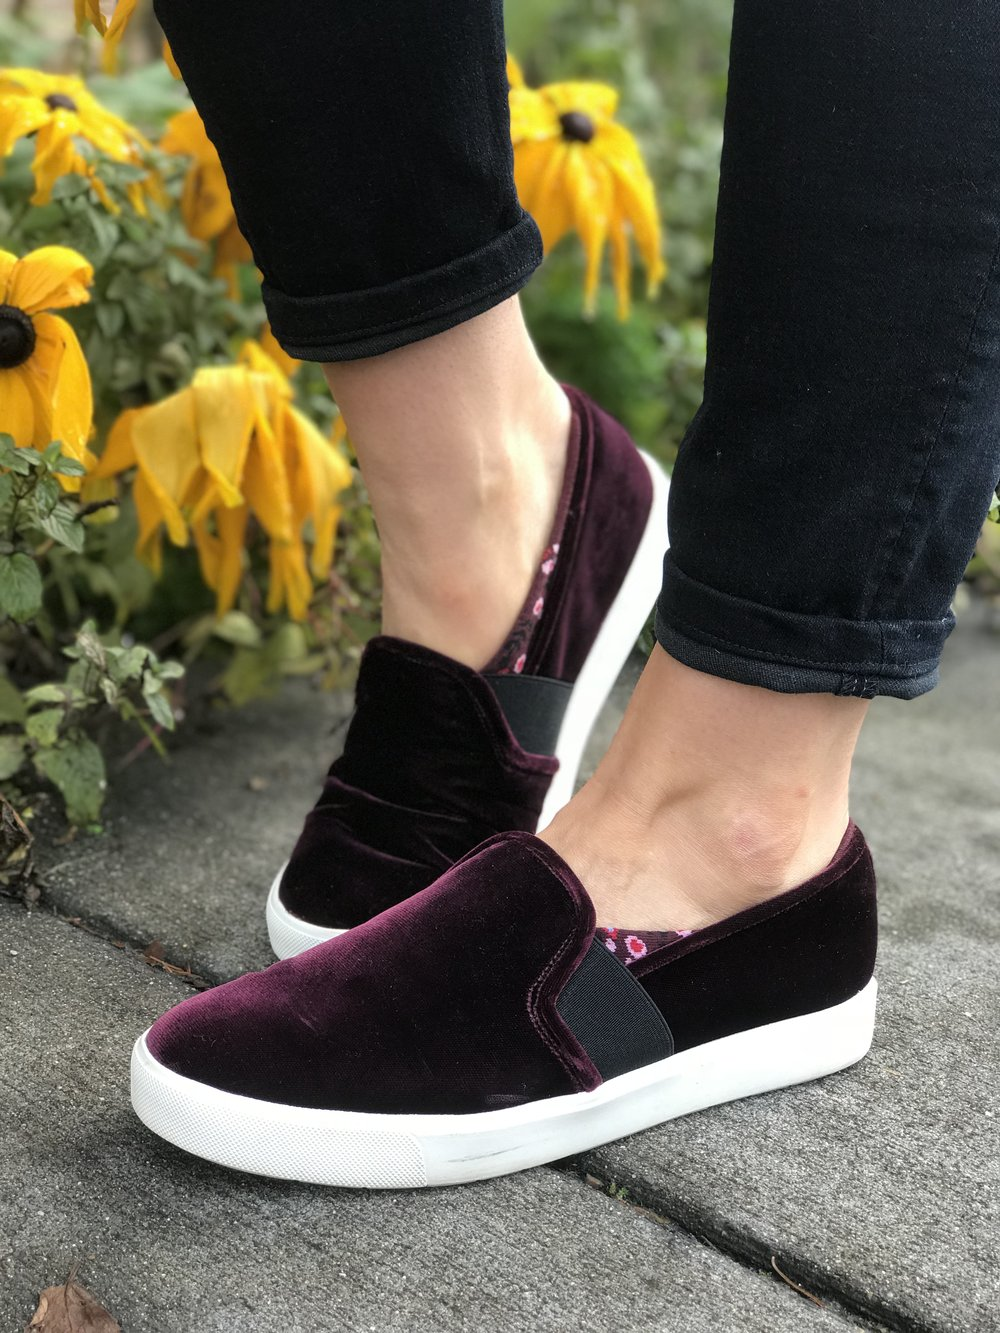 These burgundy velvet beauties by Vince have stolen my heart this winter. I love them with a pair of cuffed jeans, but even with a t-shirt dress and a vest!